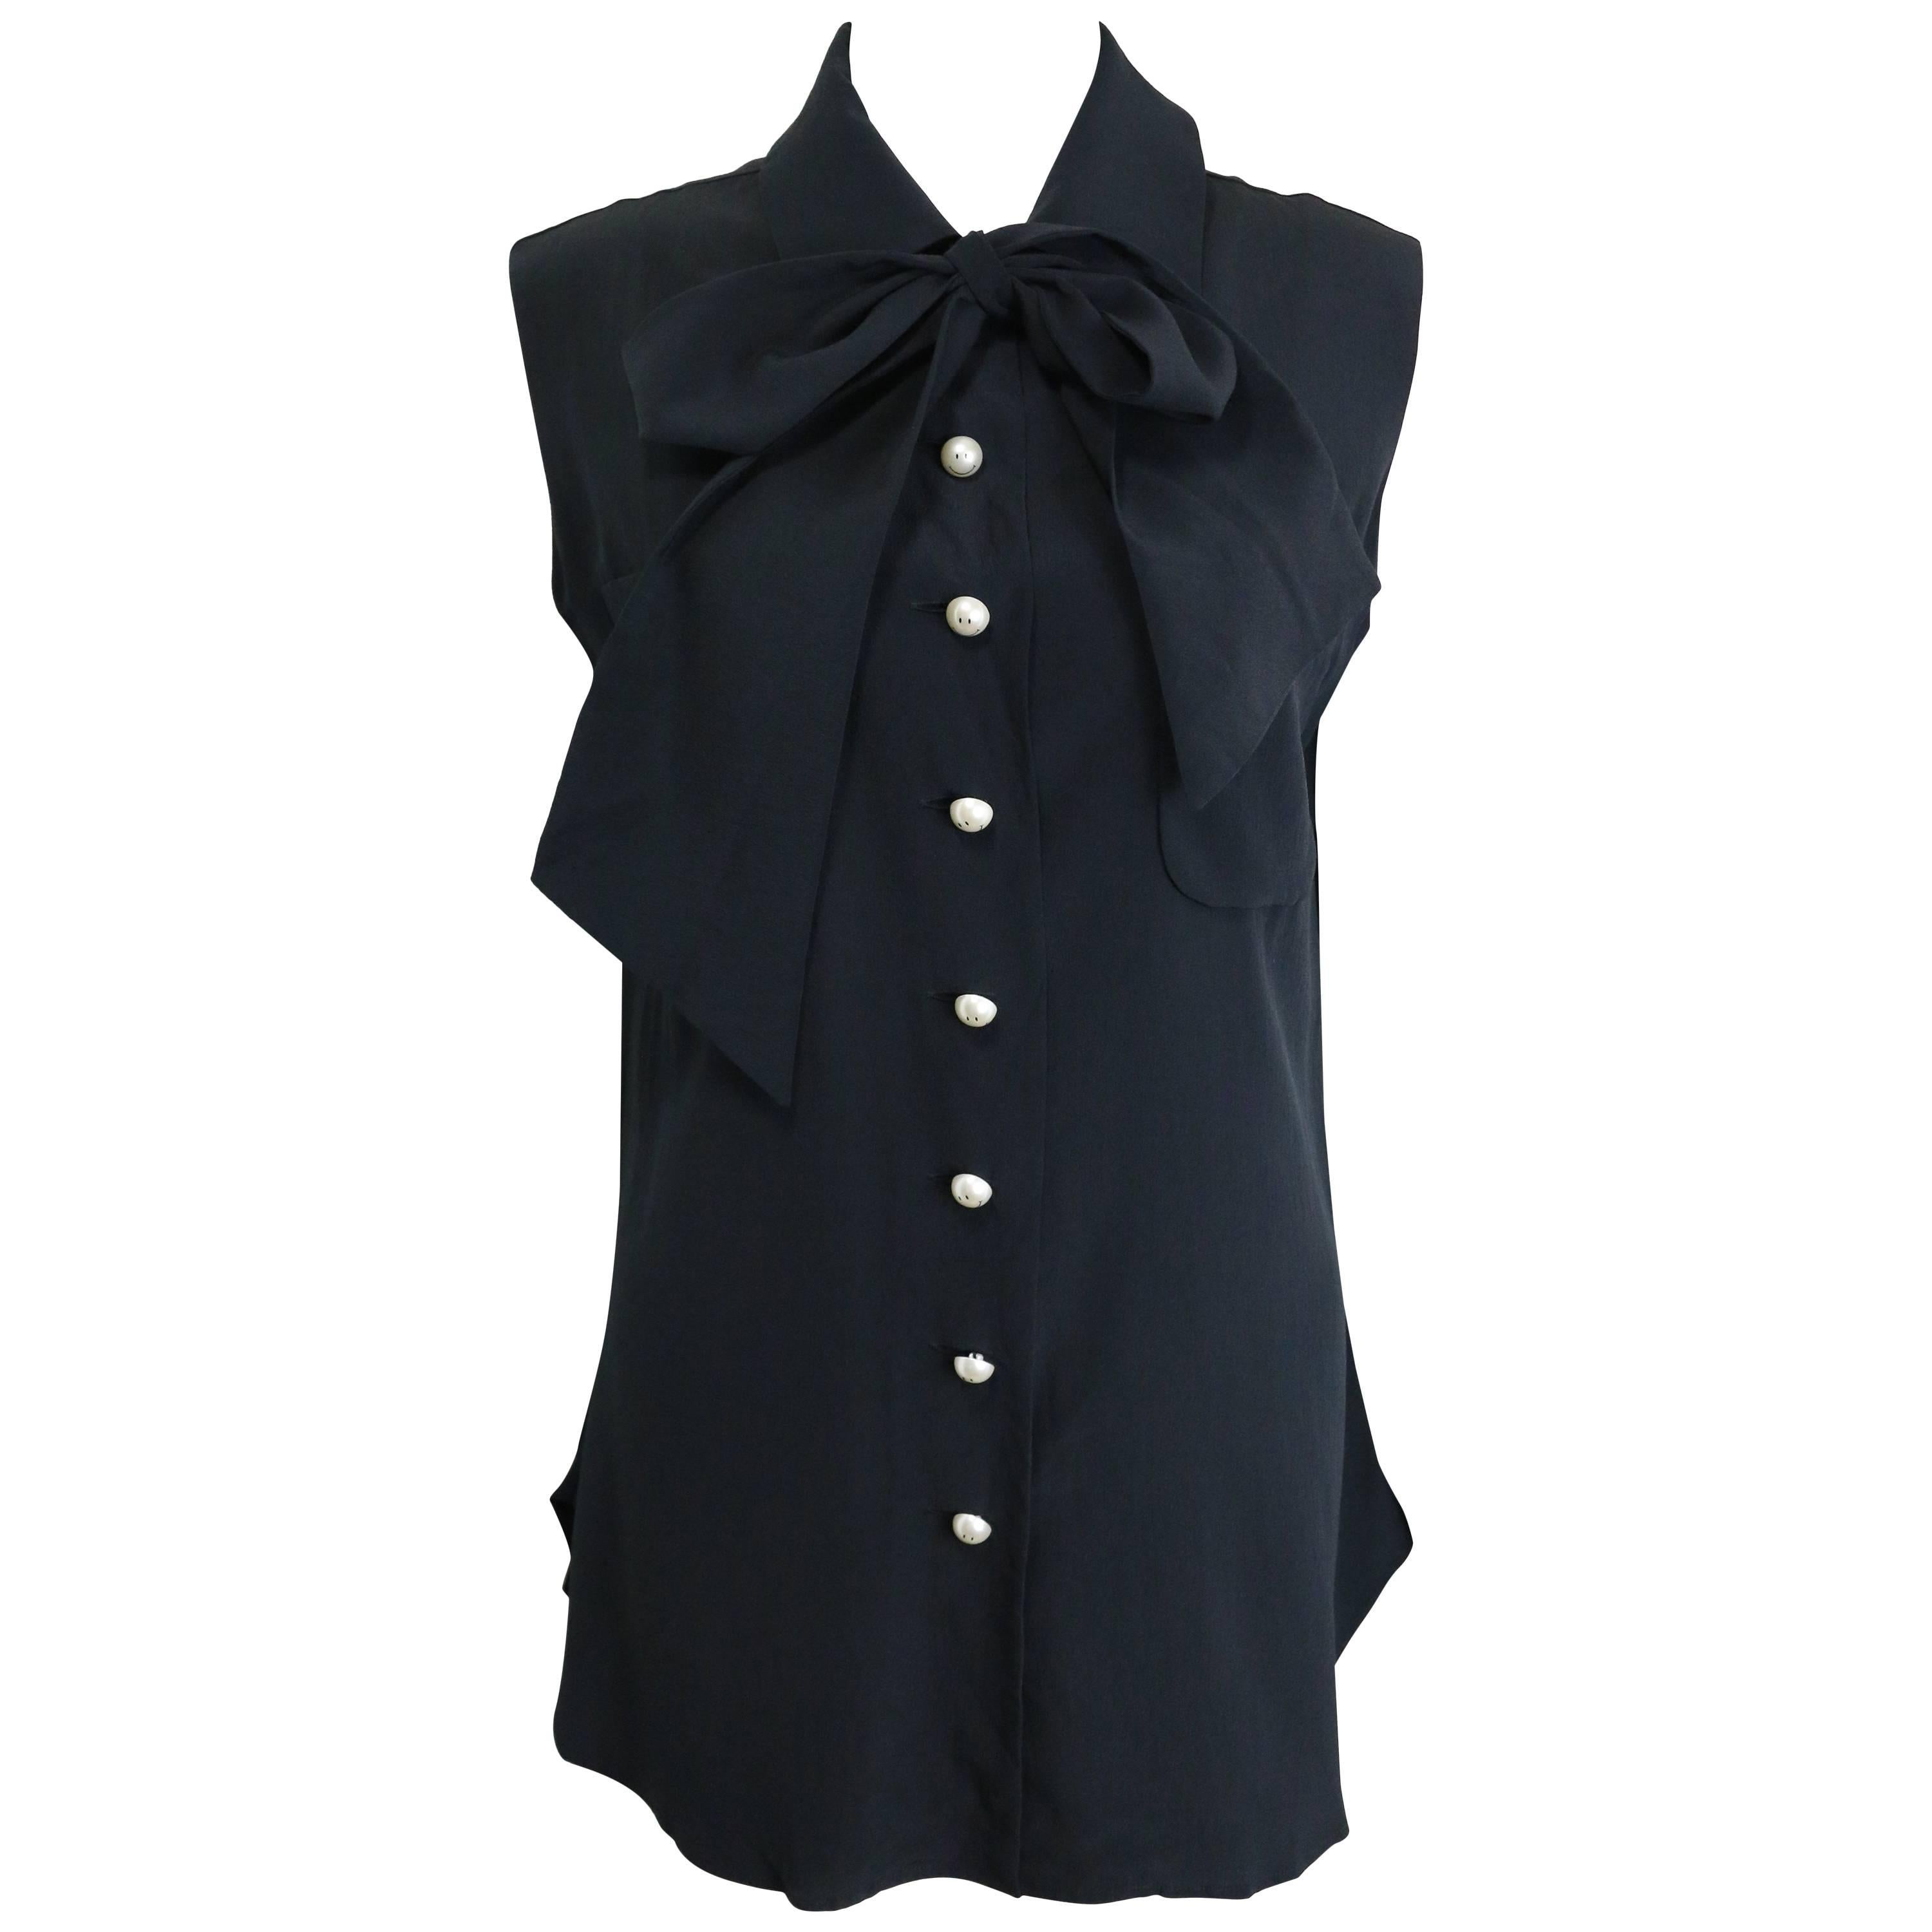 Moschino Couture Black Silk with Smiley Pearl Buttons Sleeveless Top